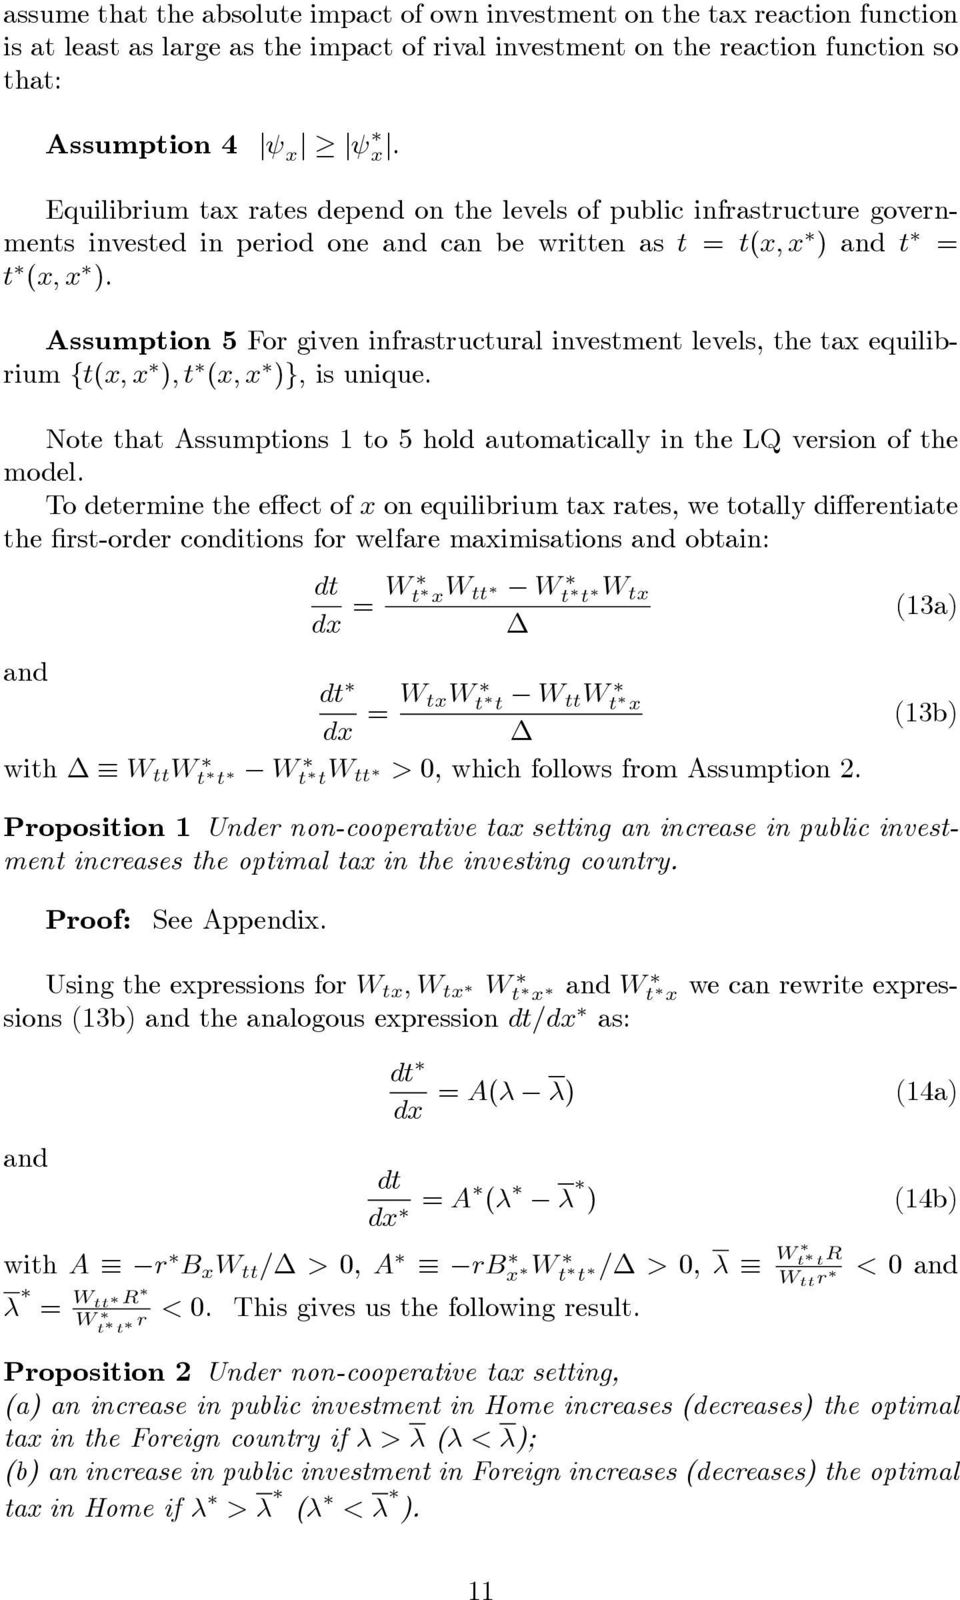 Assumption 5 For given infrastructural investment levels, the tax equilibrium {t(x, x ), t (x, x )}, is unique. Note that Assumptions 1 to 5 hold automatically in the LQ version of the model.